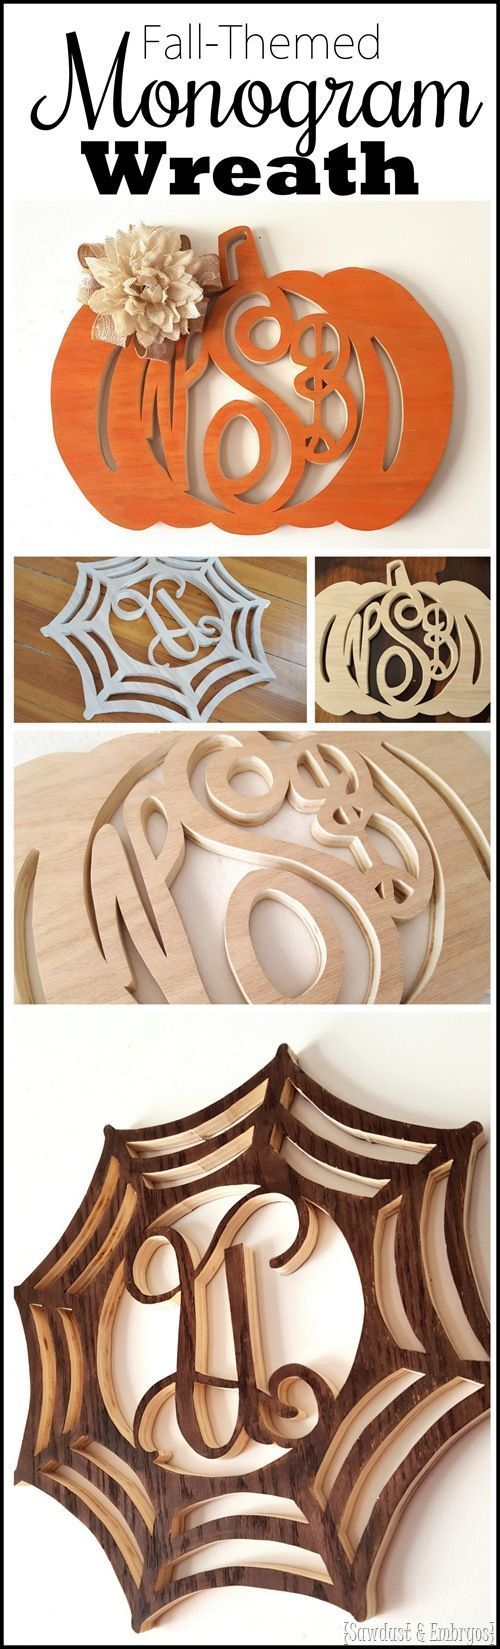 All you need is a scroll saw and a slab of wood to make these Wooden Fall-themed Monogram Wreaths! We've got a pumpkin and a spiderweb version!